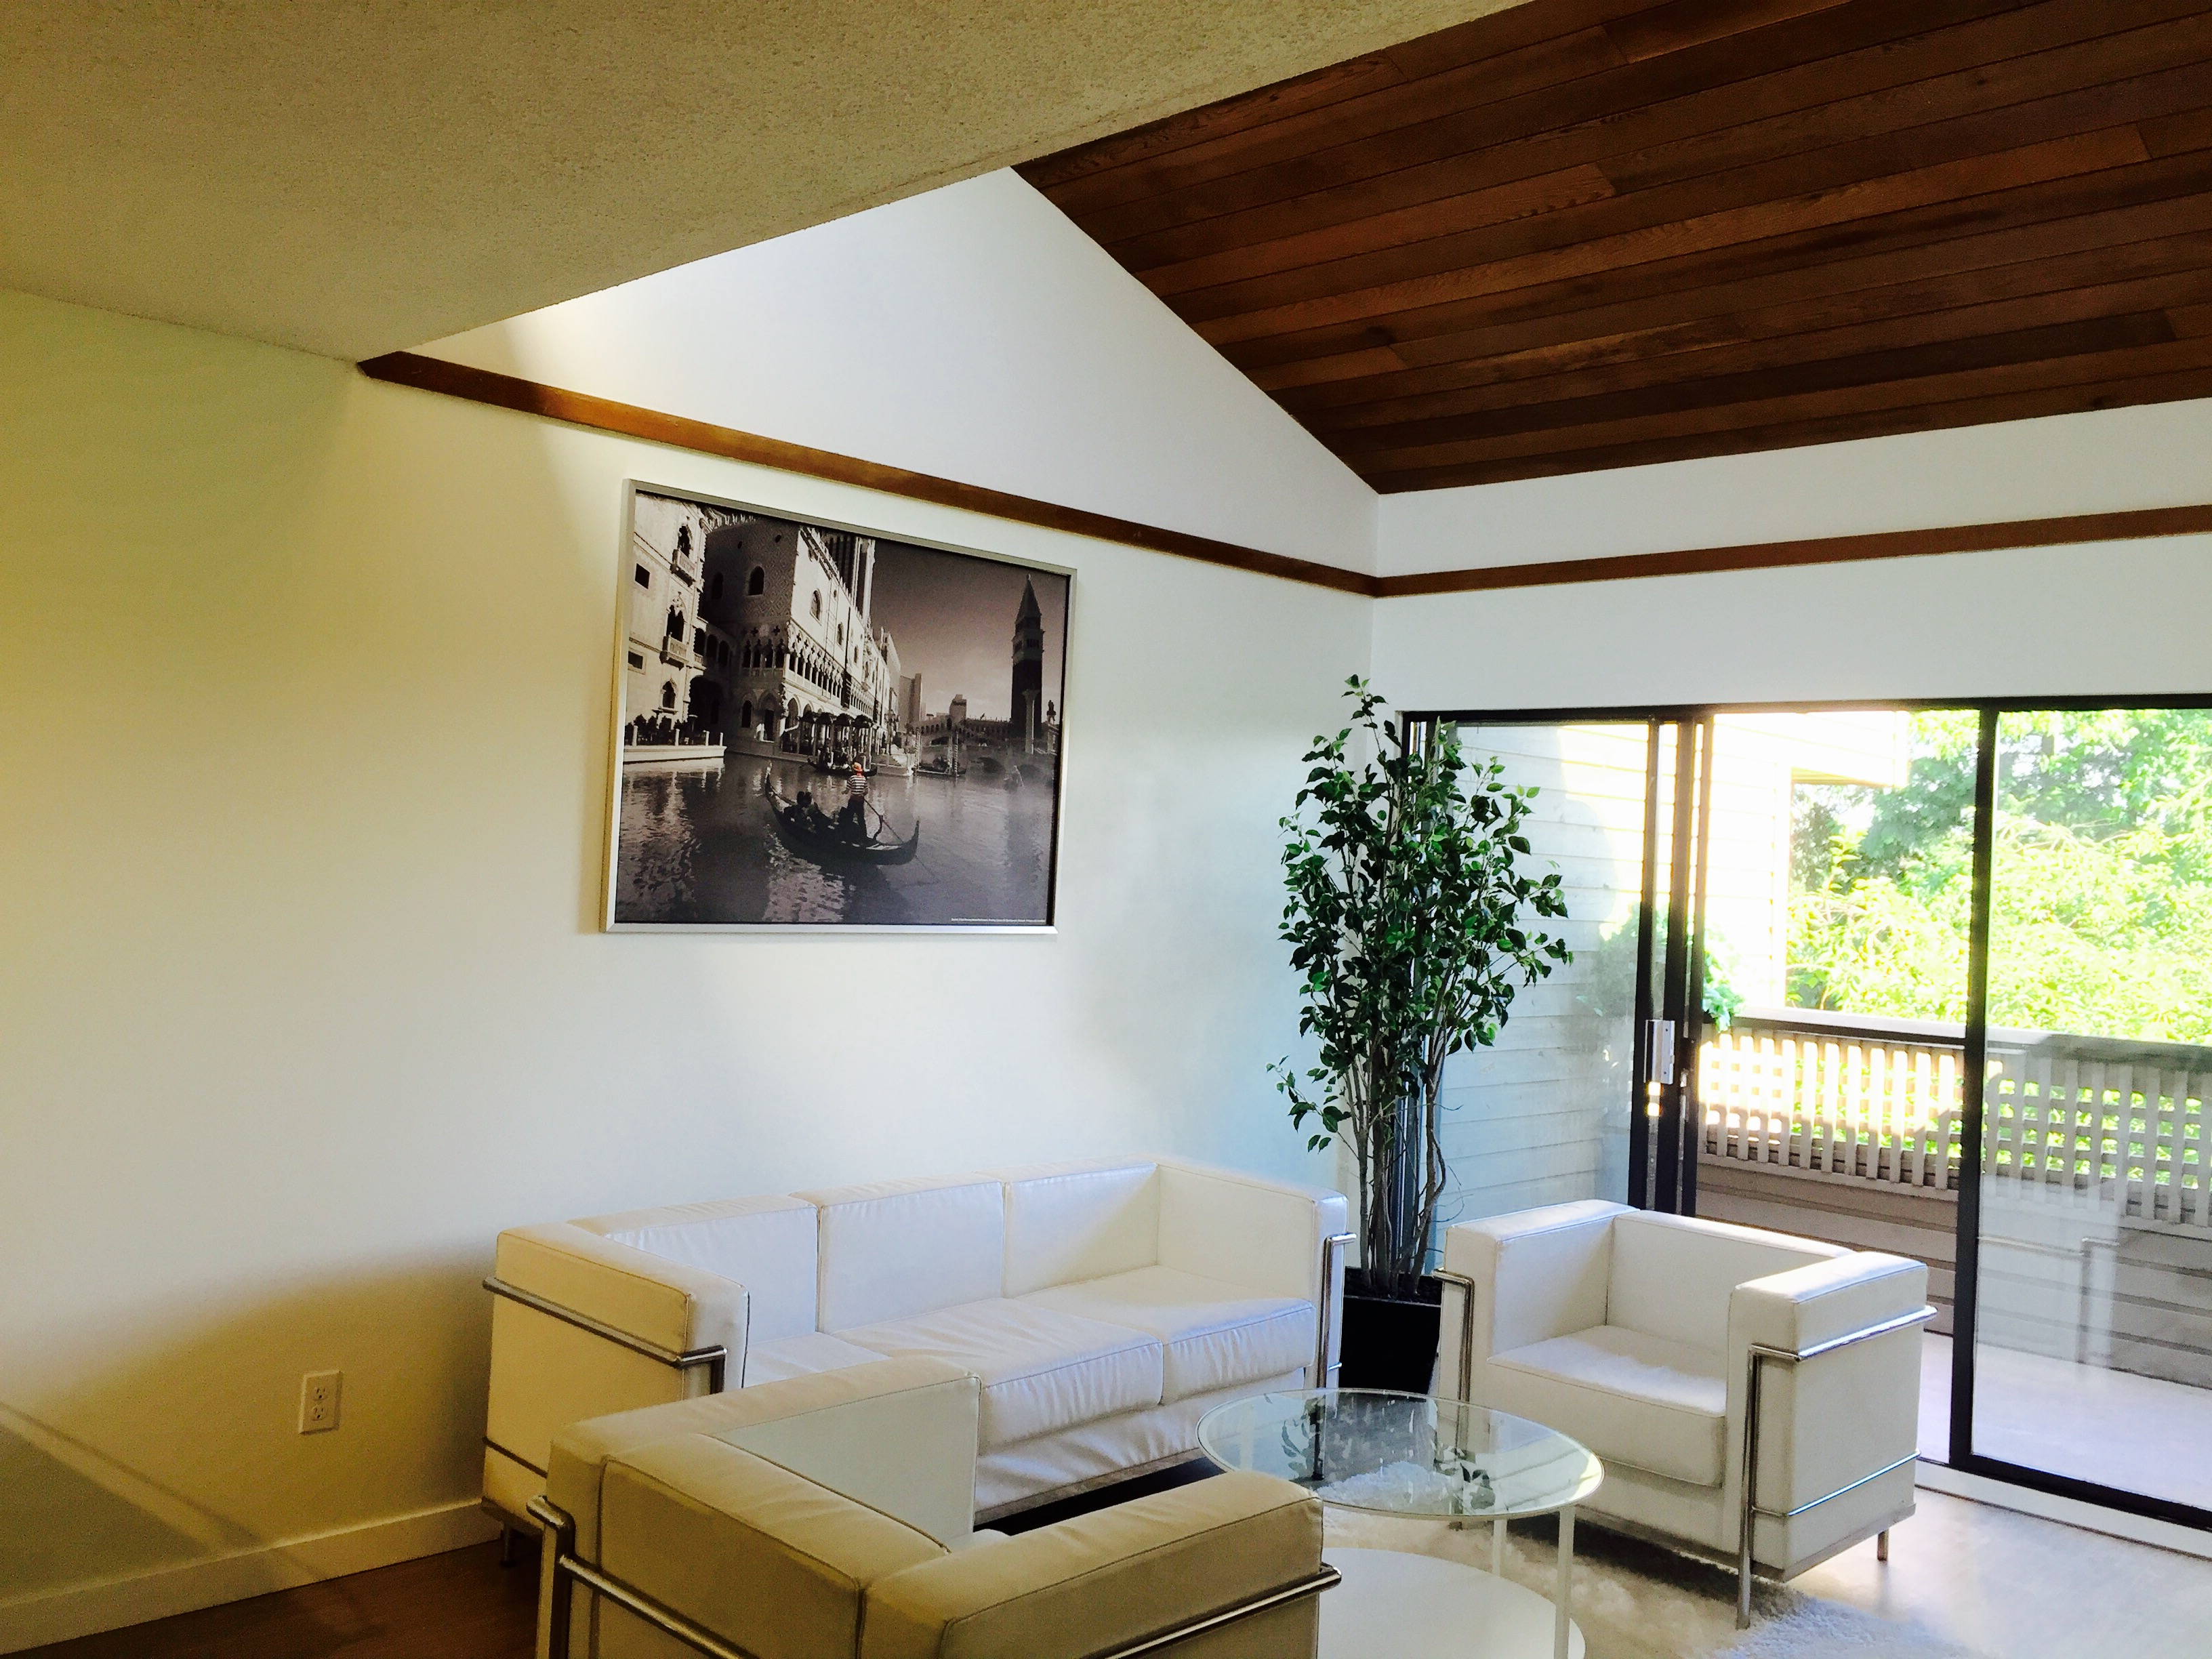 Living Room and Vaulted Ceiling